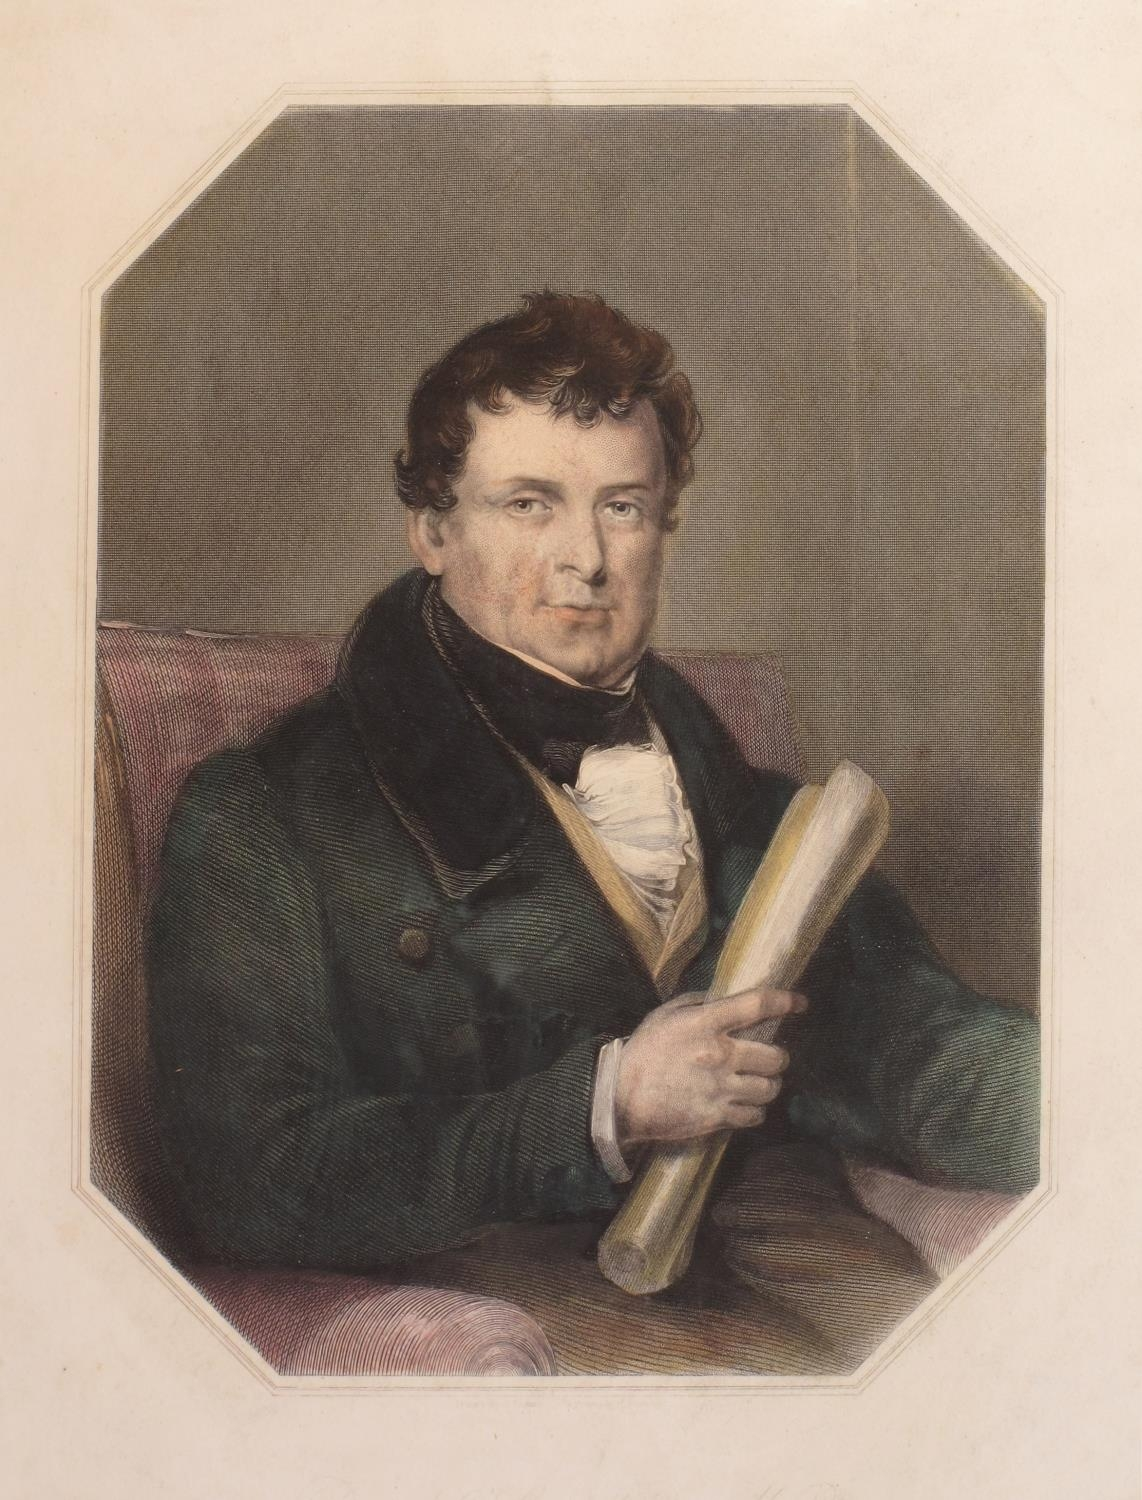 Daniel O'Connell, cartoons and portrait engravings. A hand-coloured engraved portrait of Daniel O' - Image 5 of 5